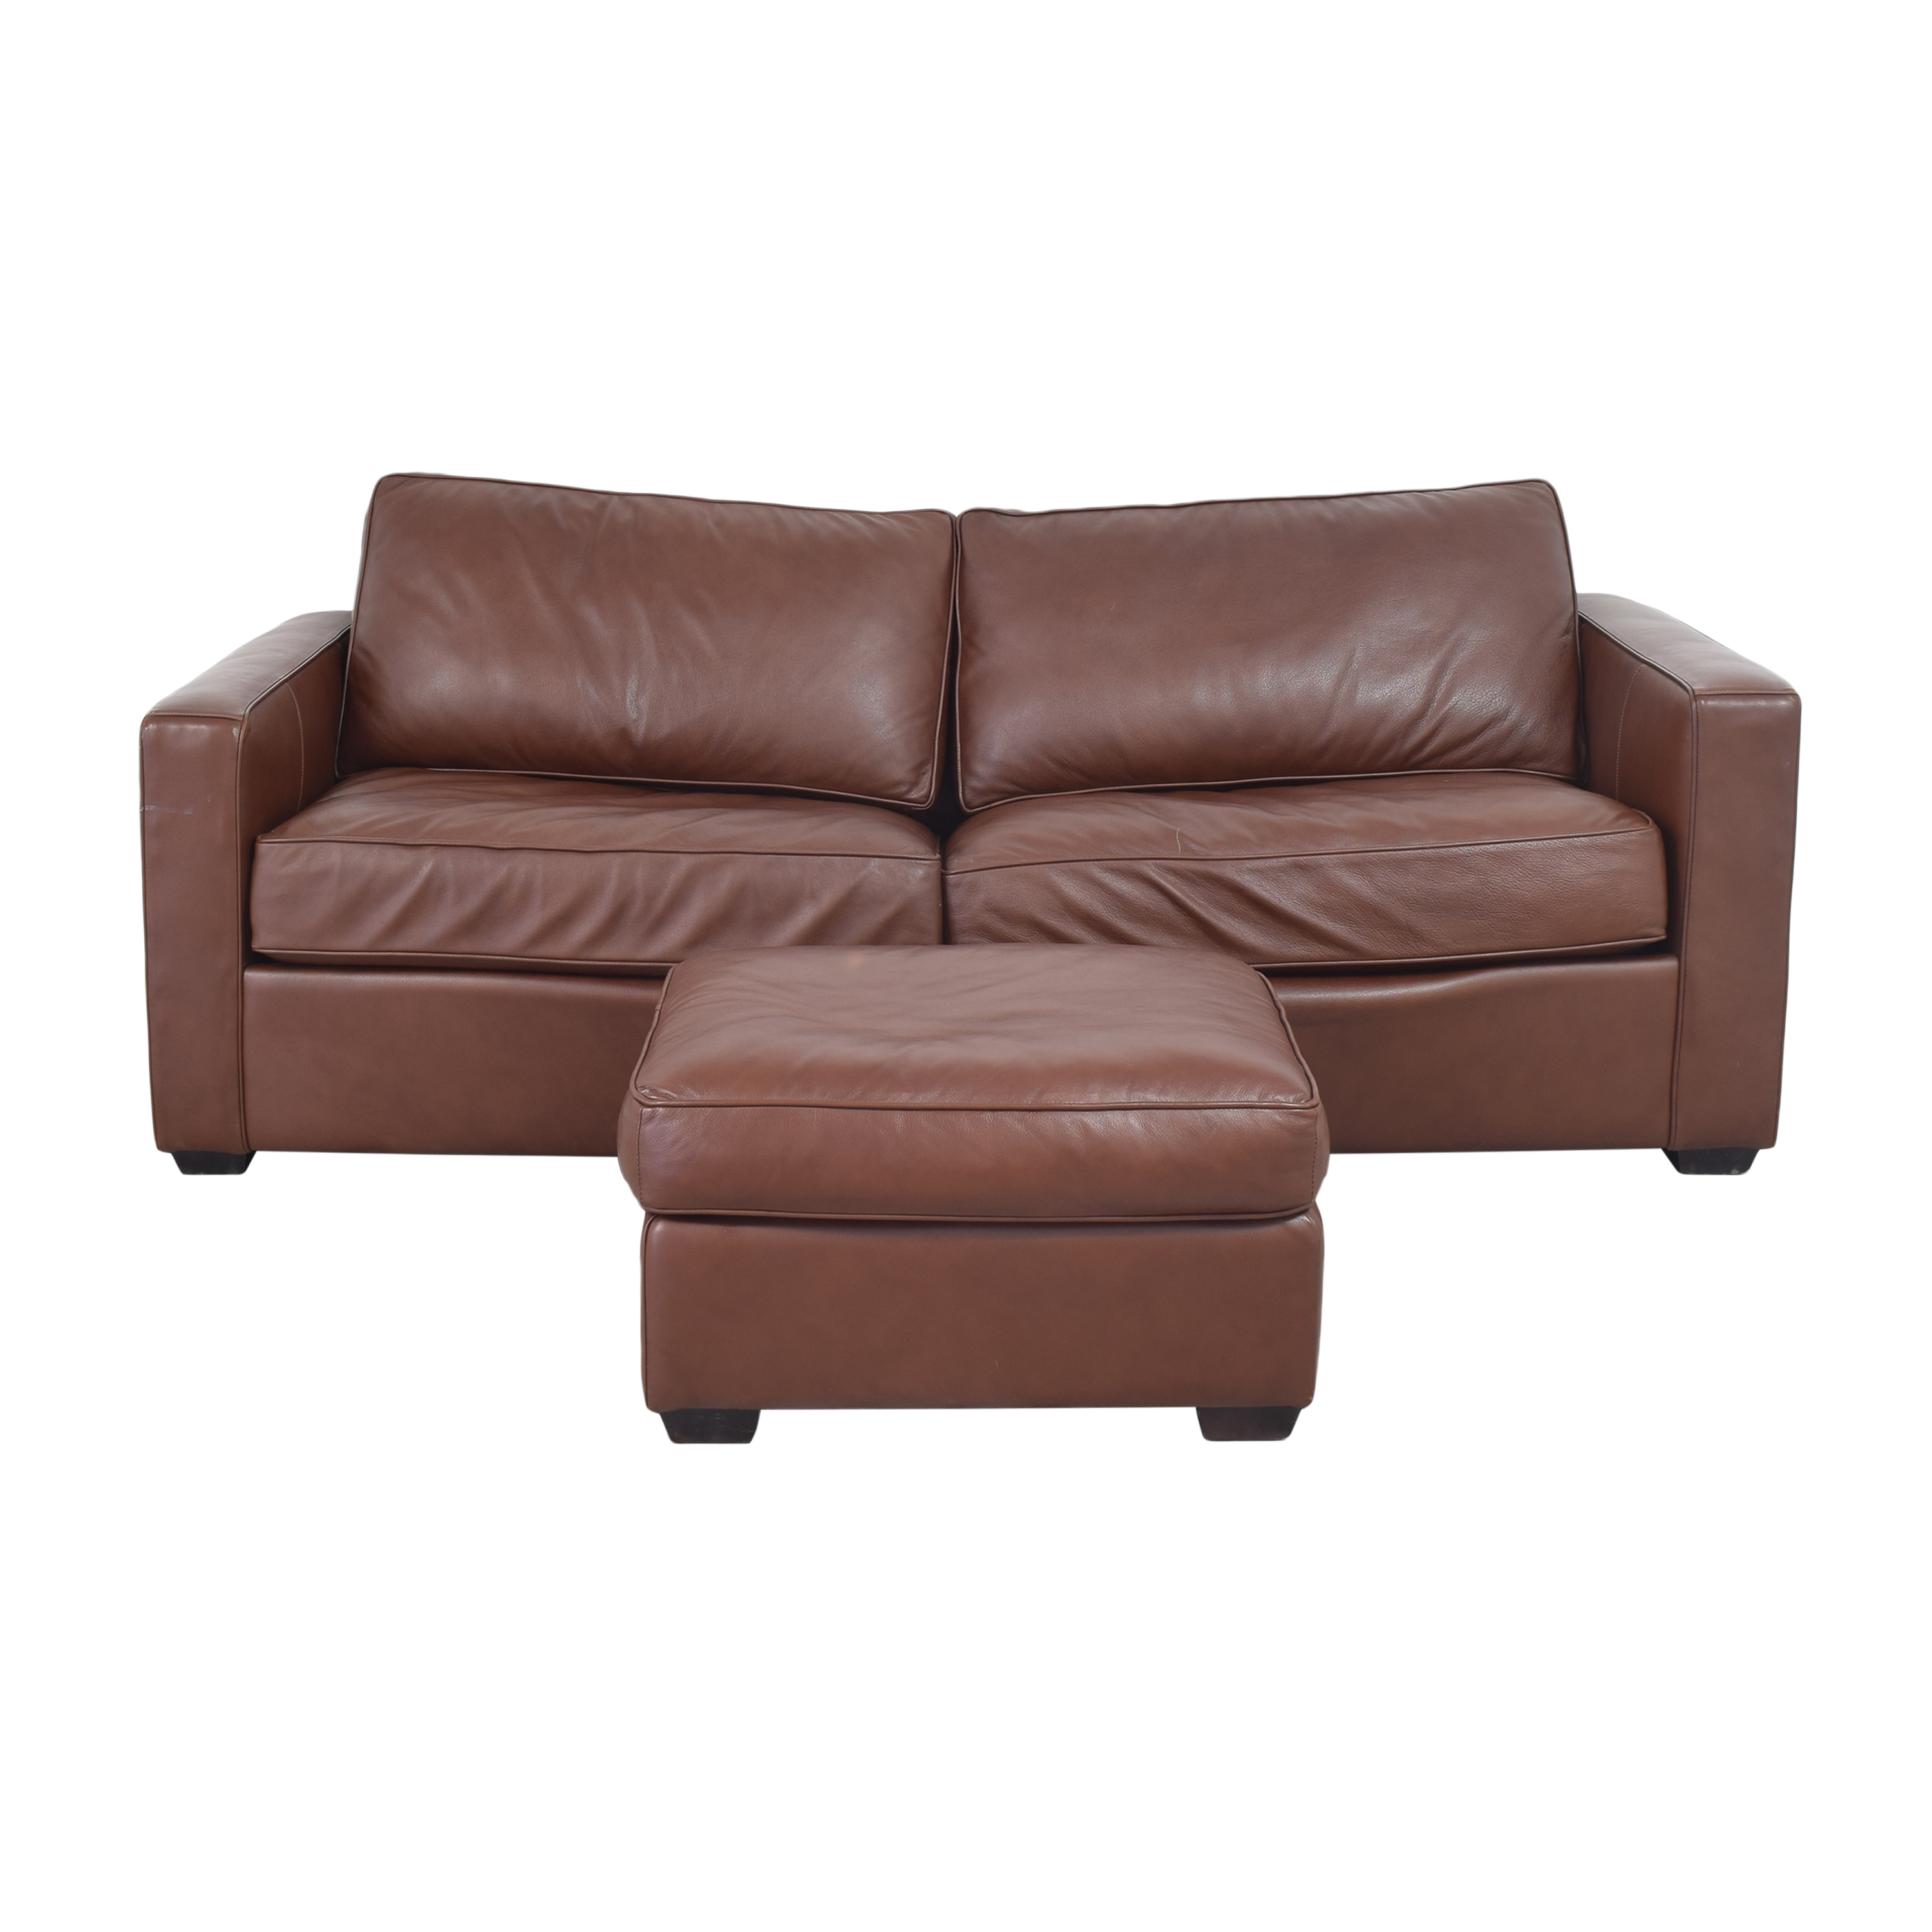 Room & Board Room & Board Ian Sleeper Sofa with Ottoman on sale